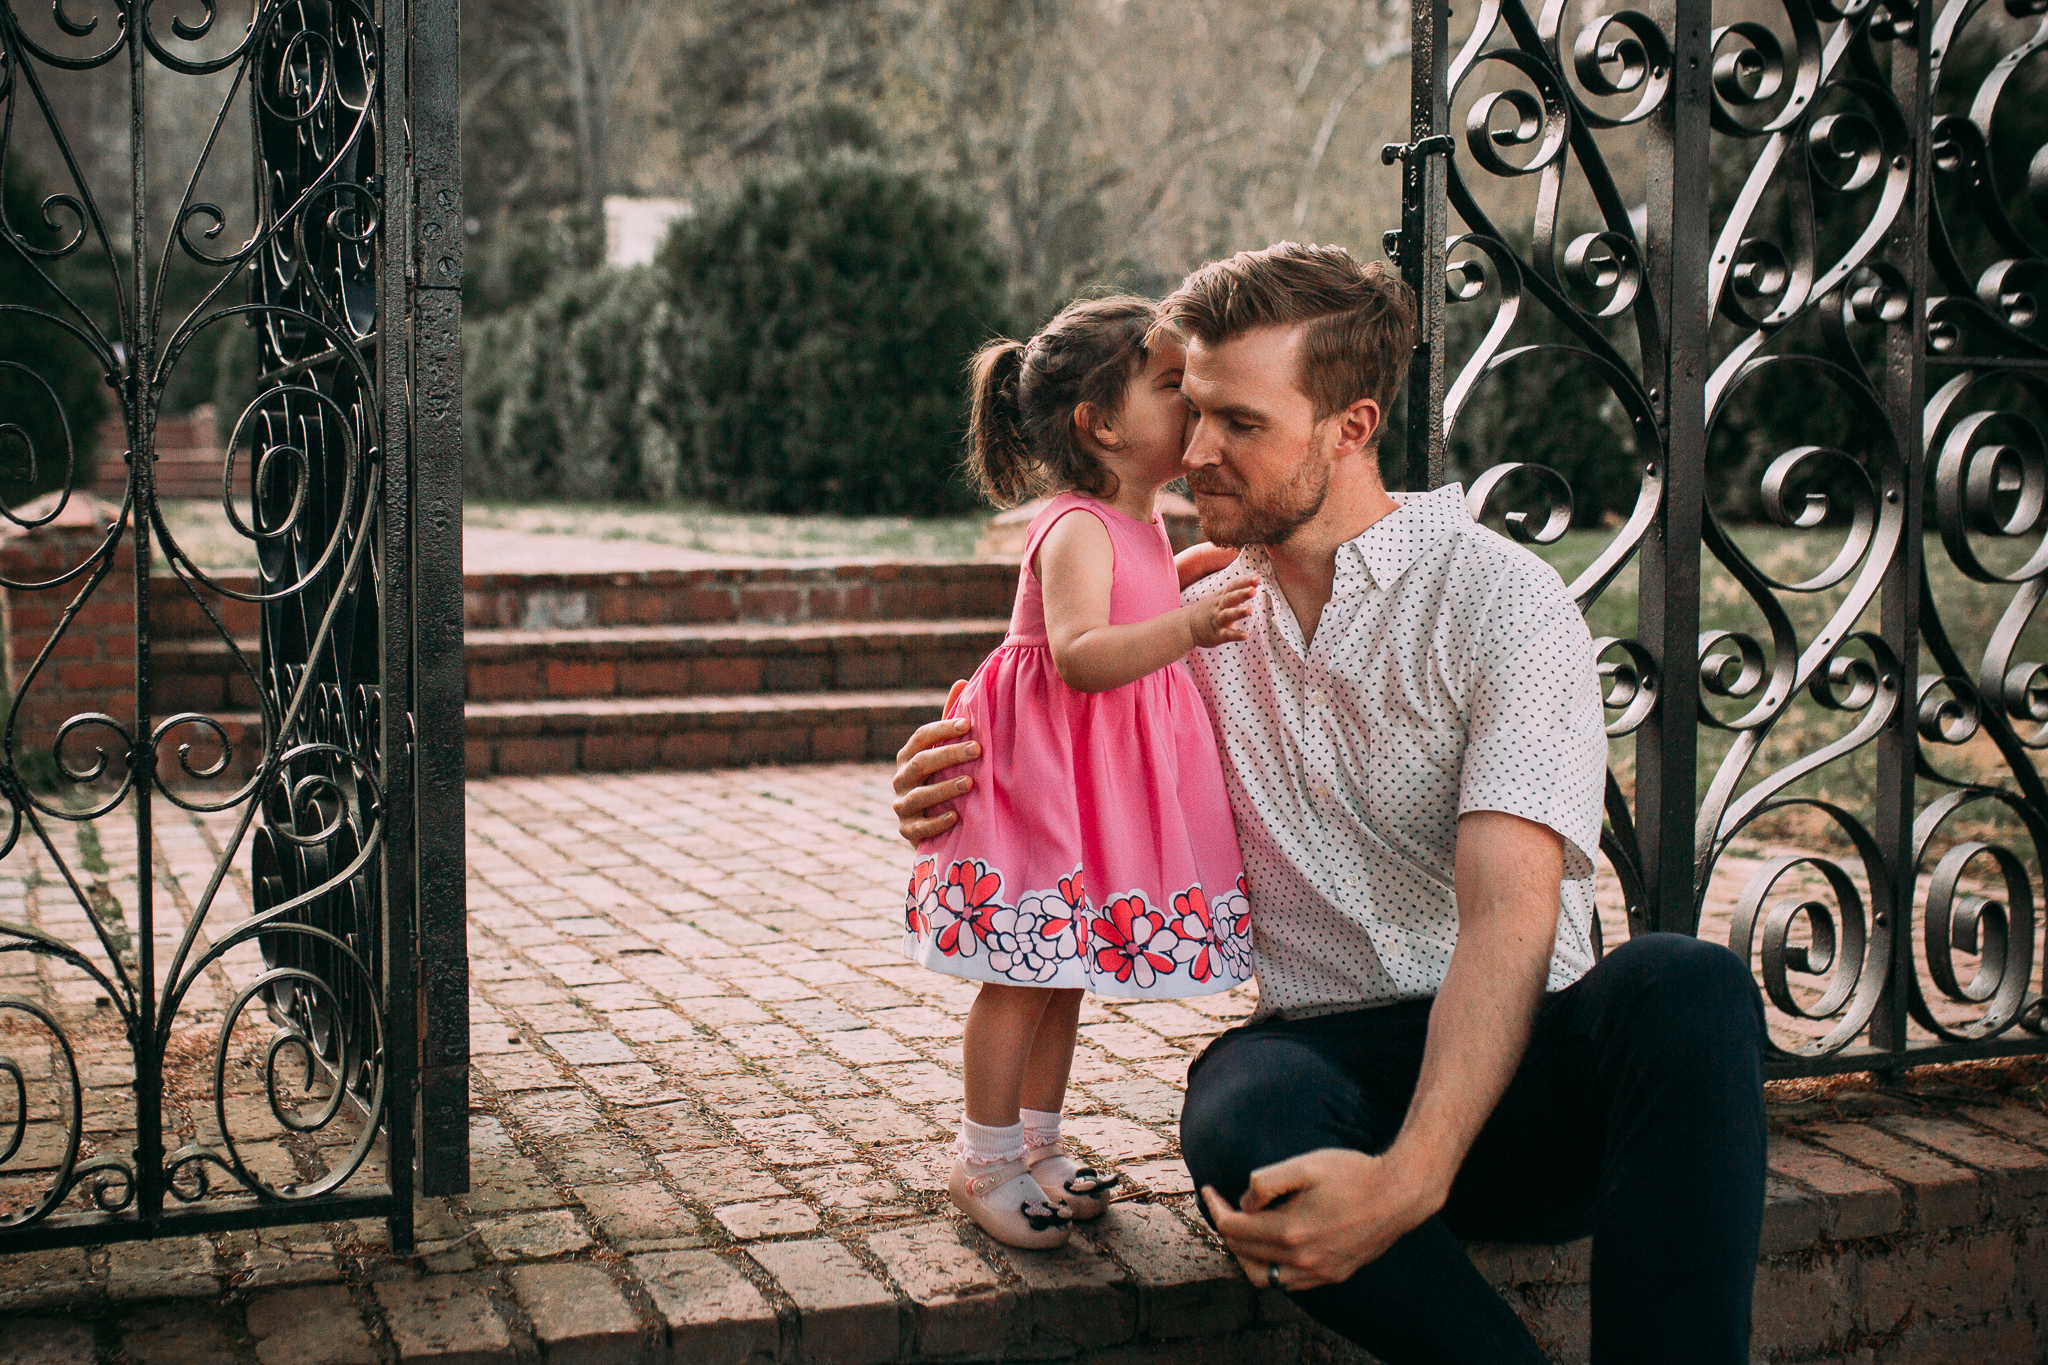 father daughter kiss family maternity lifestyle documentary Morven Park Leesburg Loudoun Virginia Spring Golden Hour Sunset Marti Austin Photography